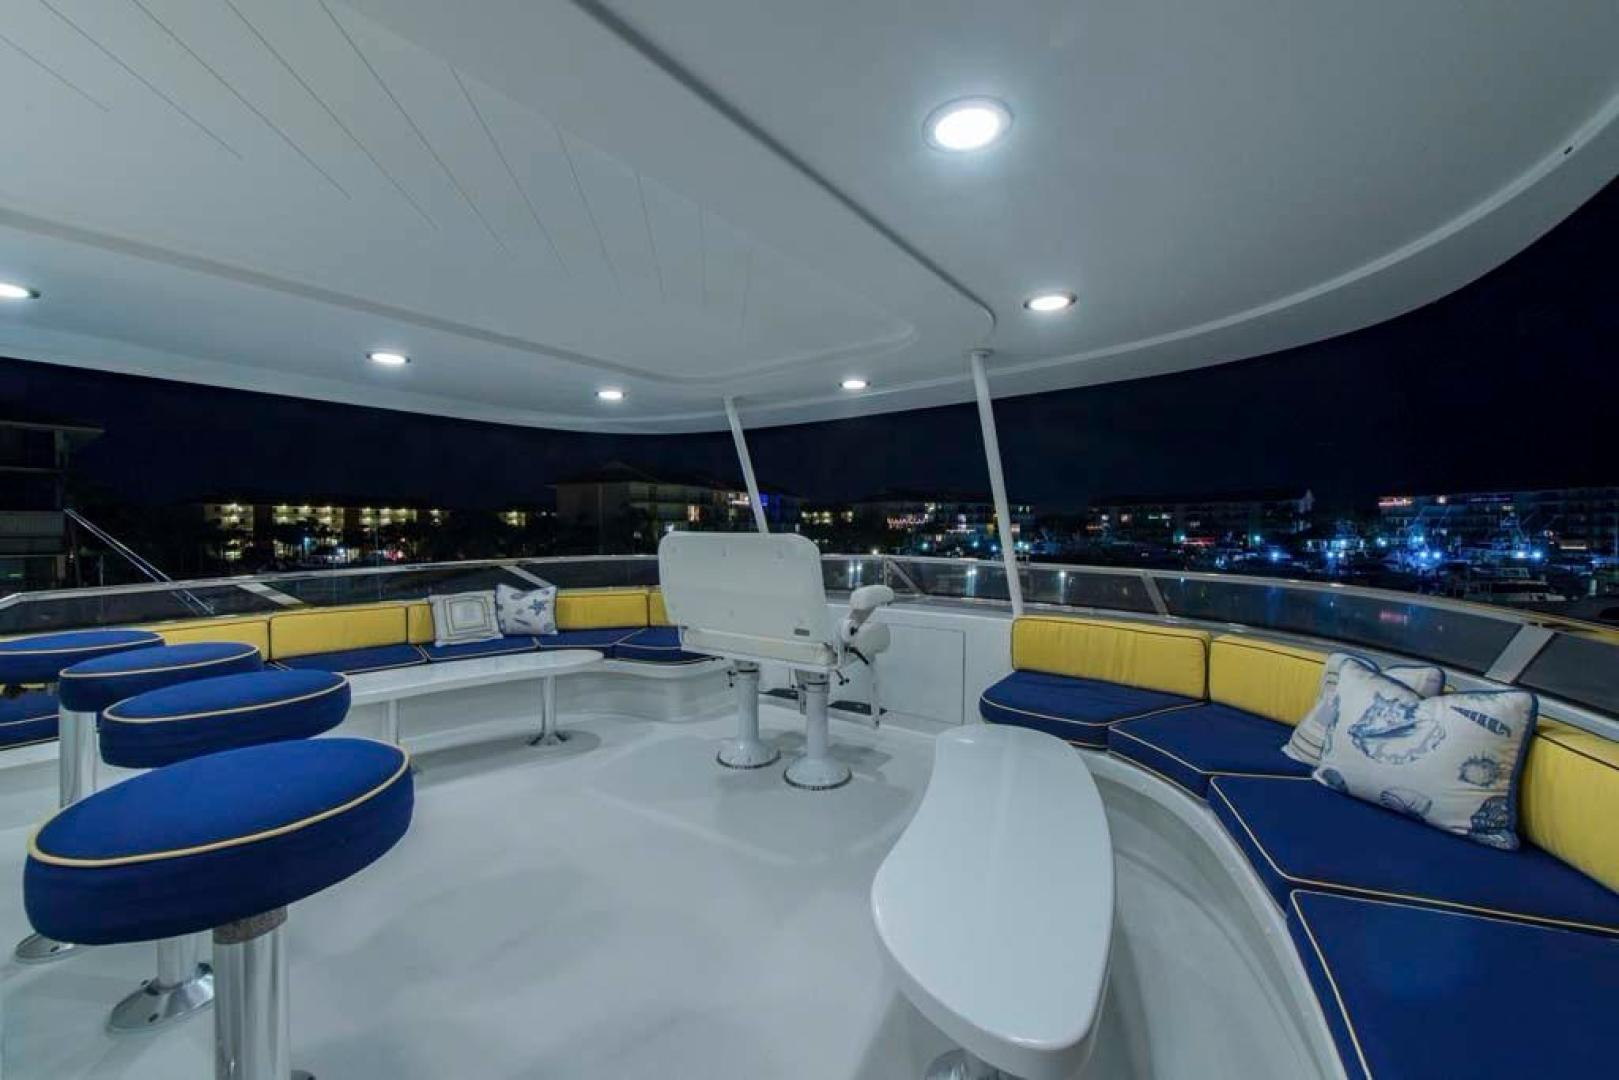 Top Deck Night Shots